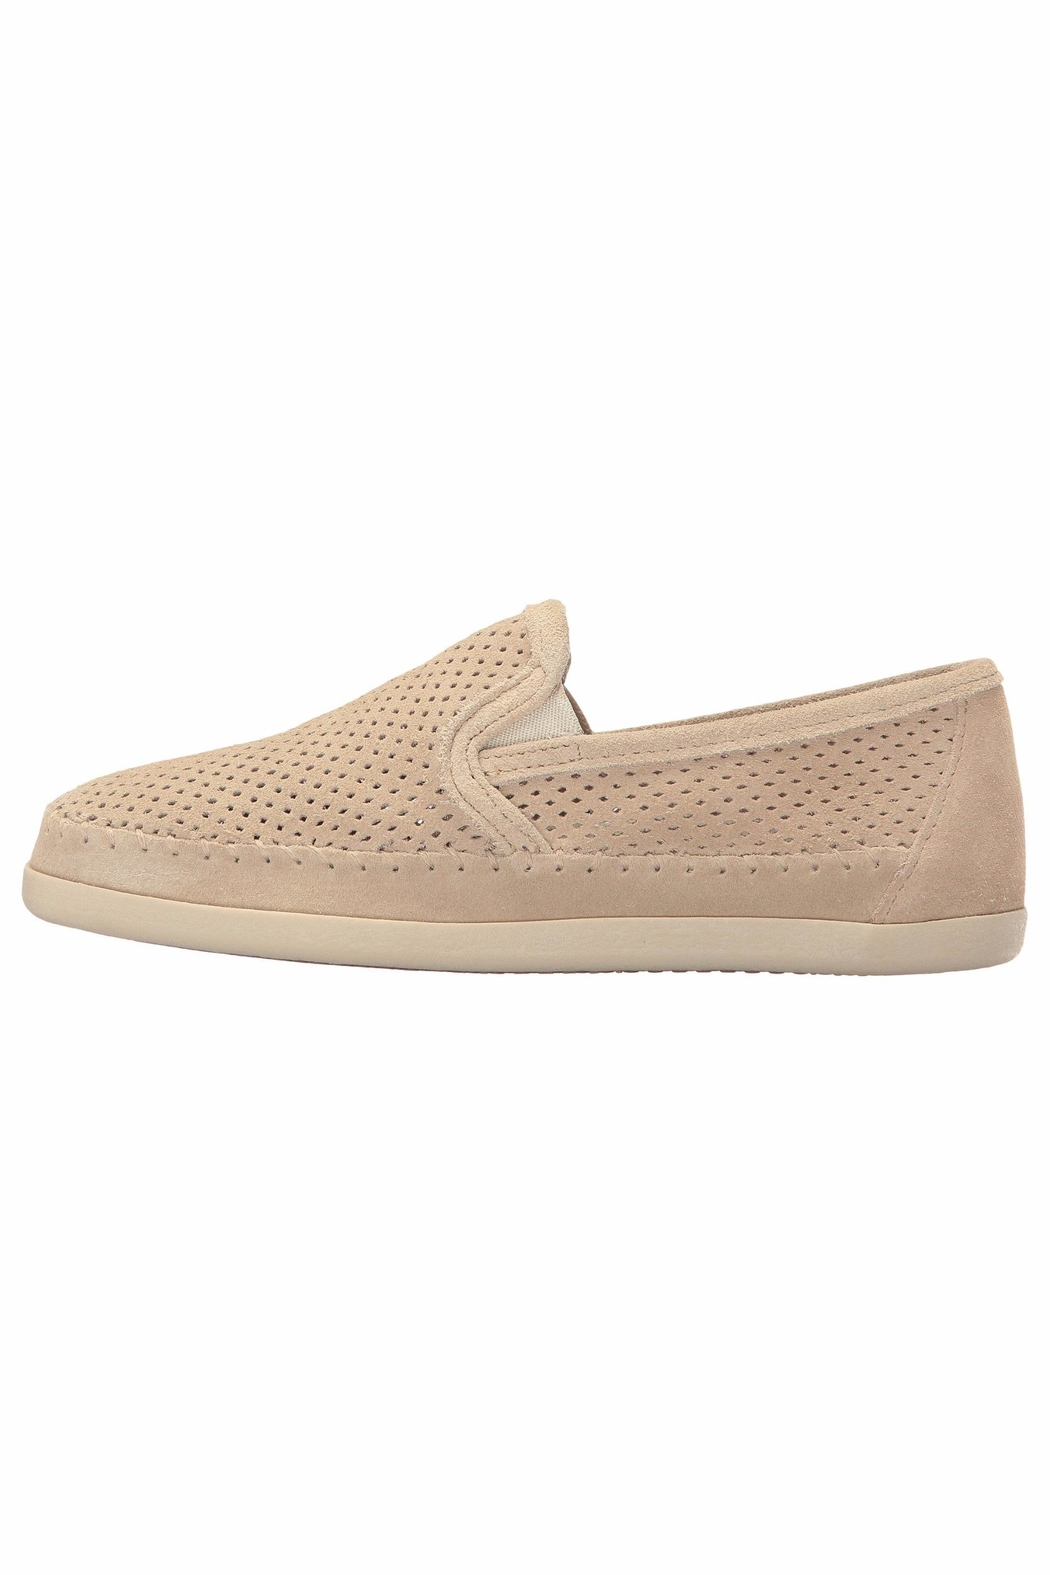 Minnetonka Moccasin Minnetonka Pacific Slip-On - Front Cropped Image